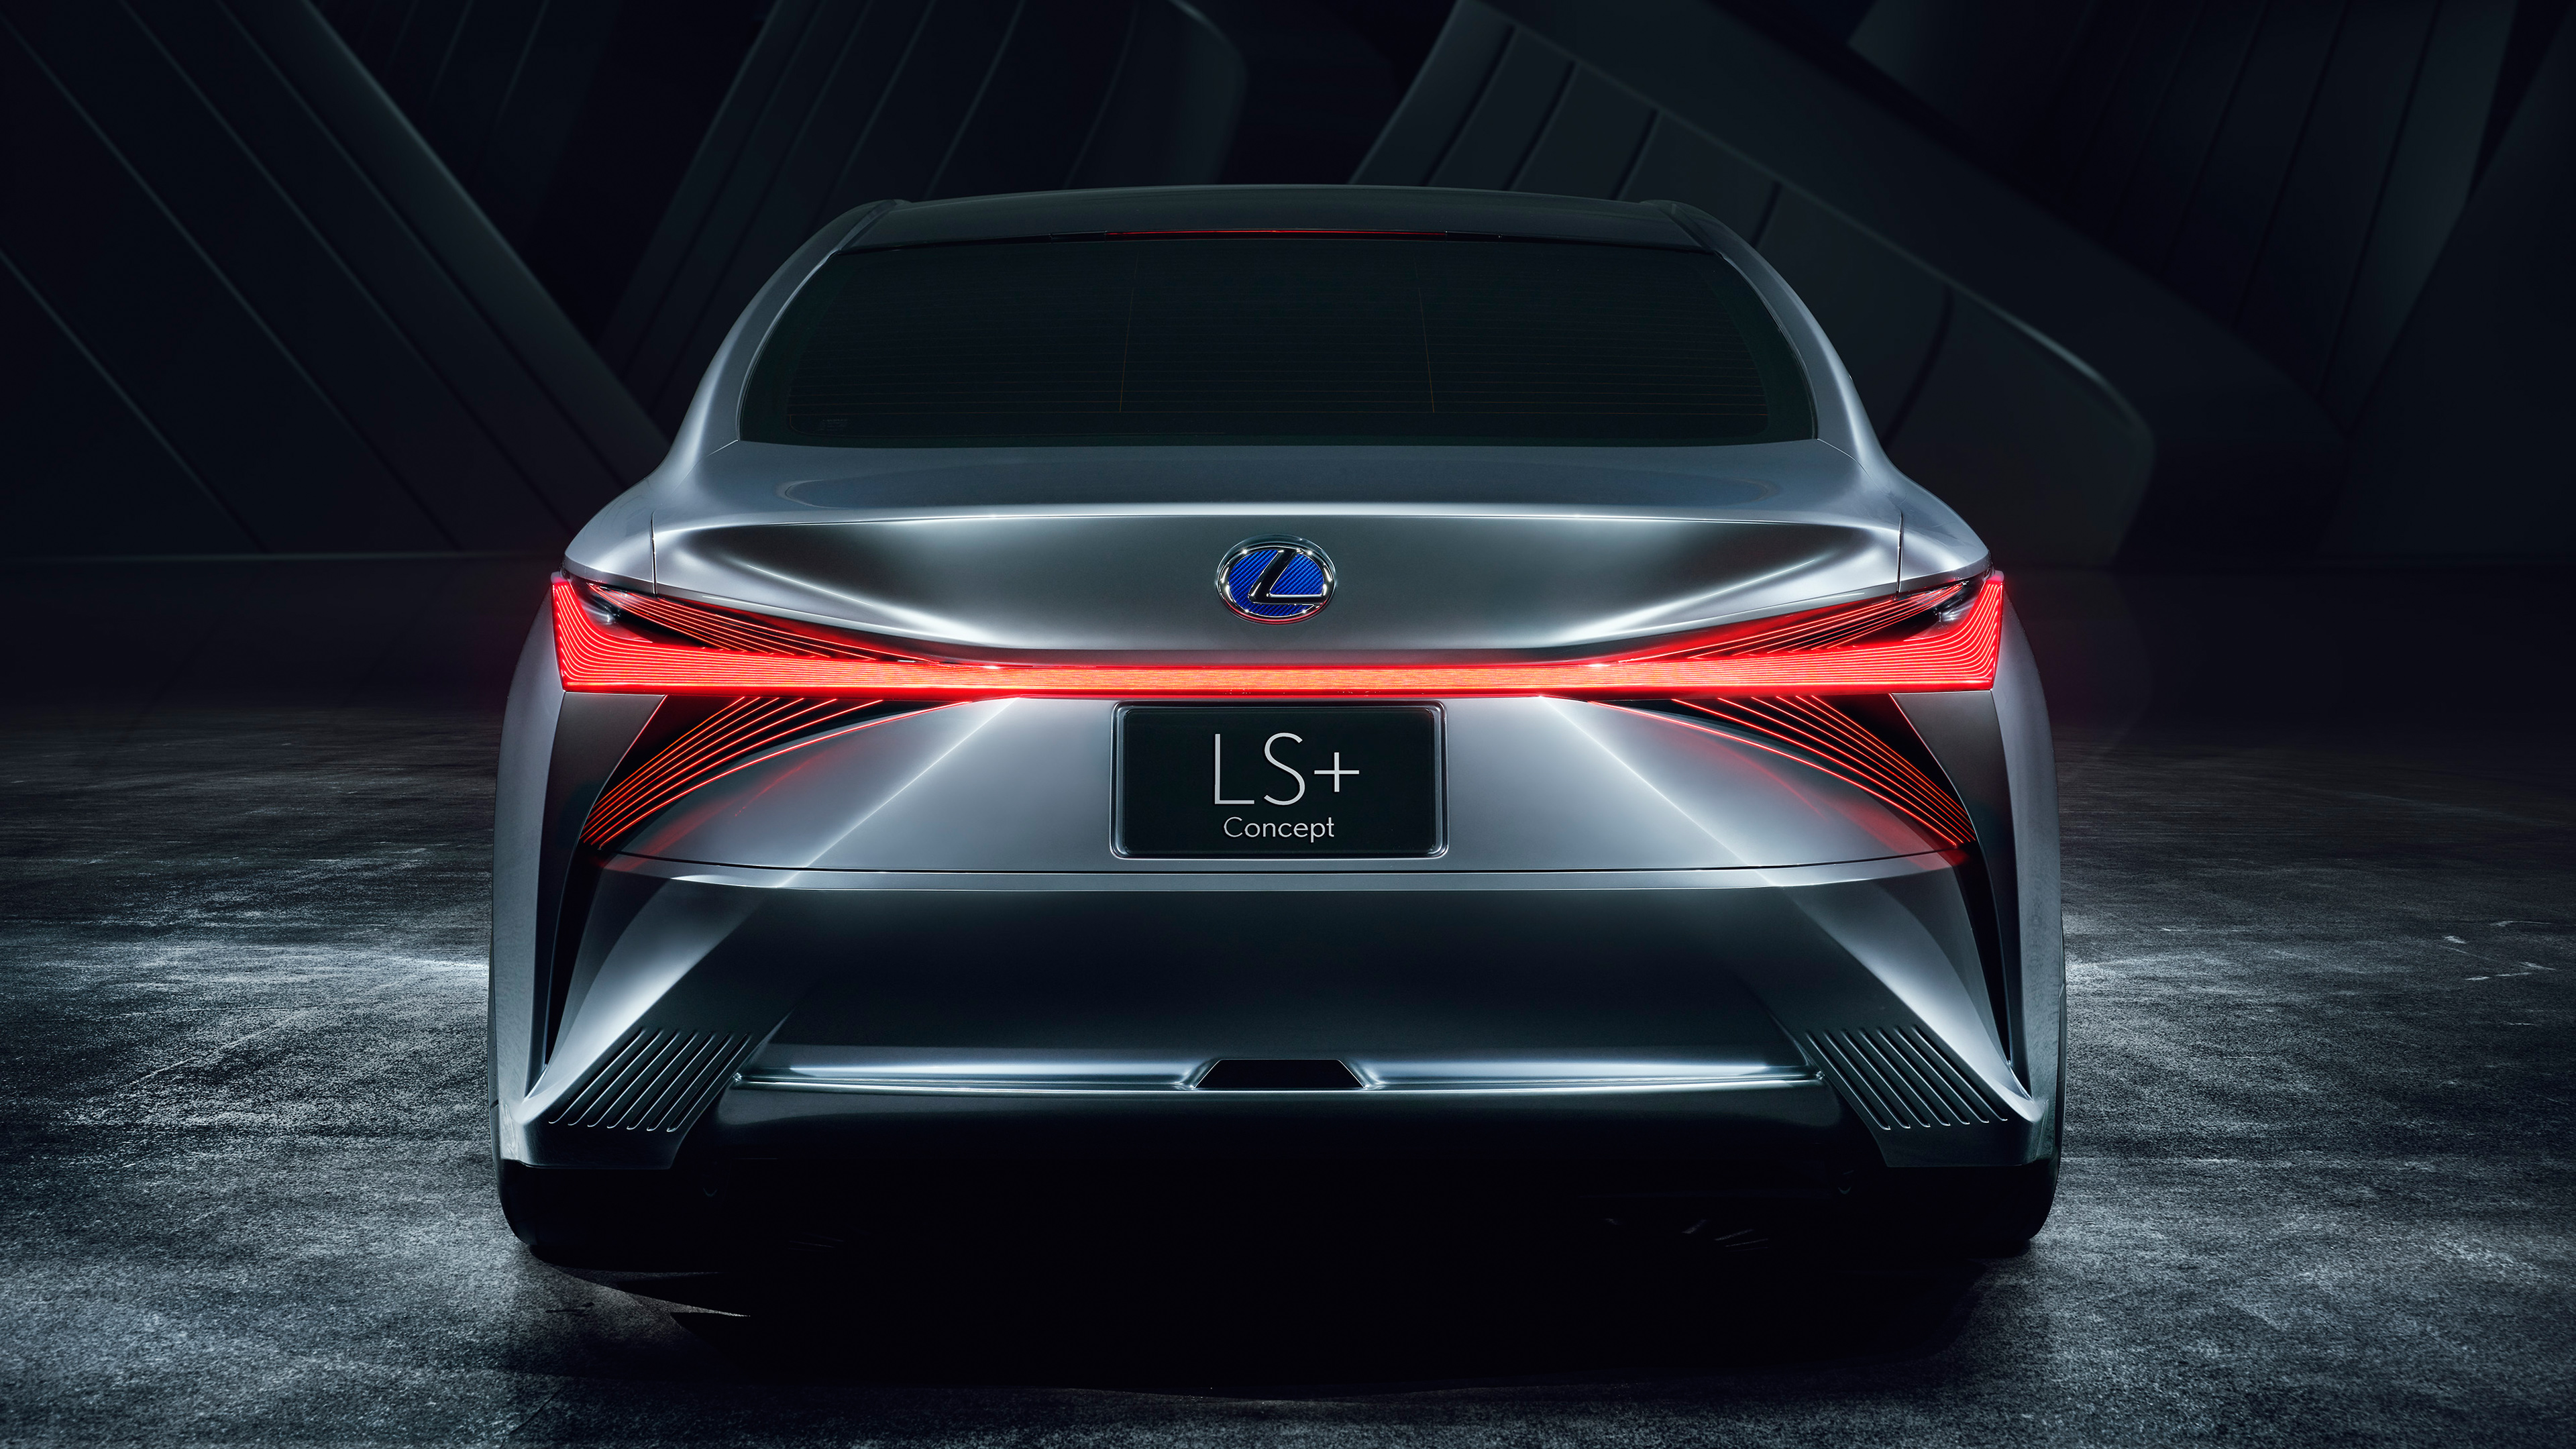 https://www.hdcarwallpapers.com/walls/2017_lexus_ls_plus_concept_4k_4-HD.jpg